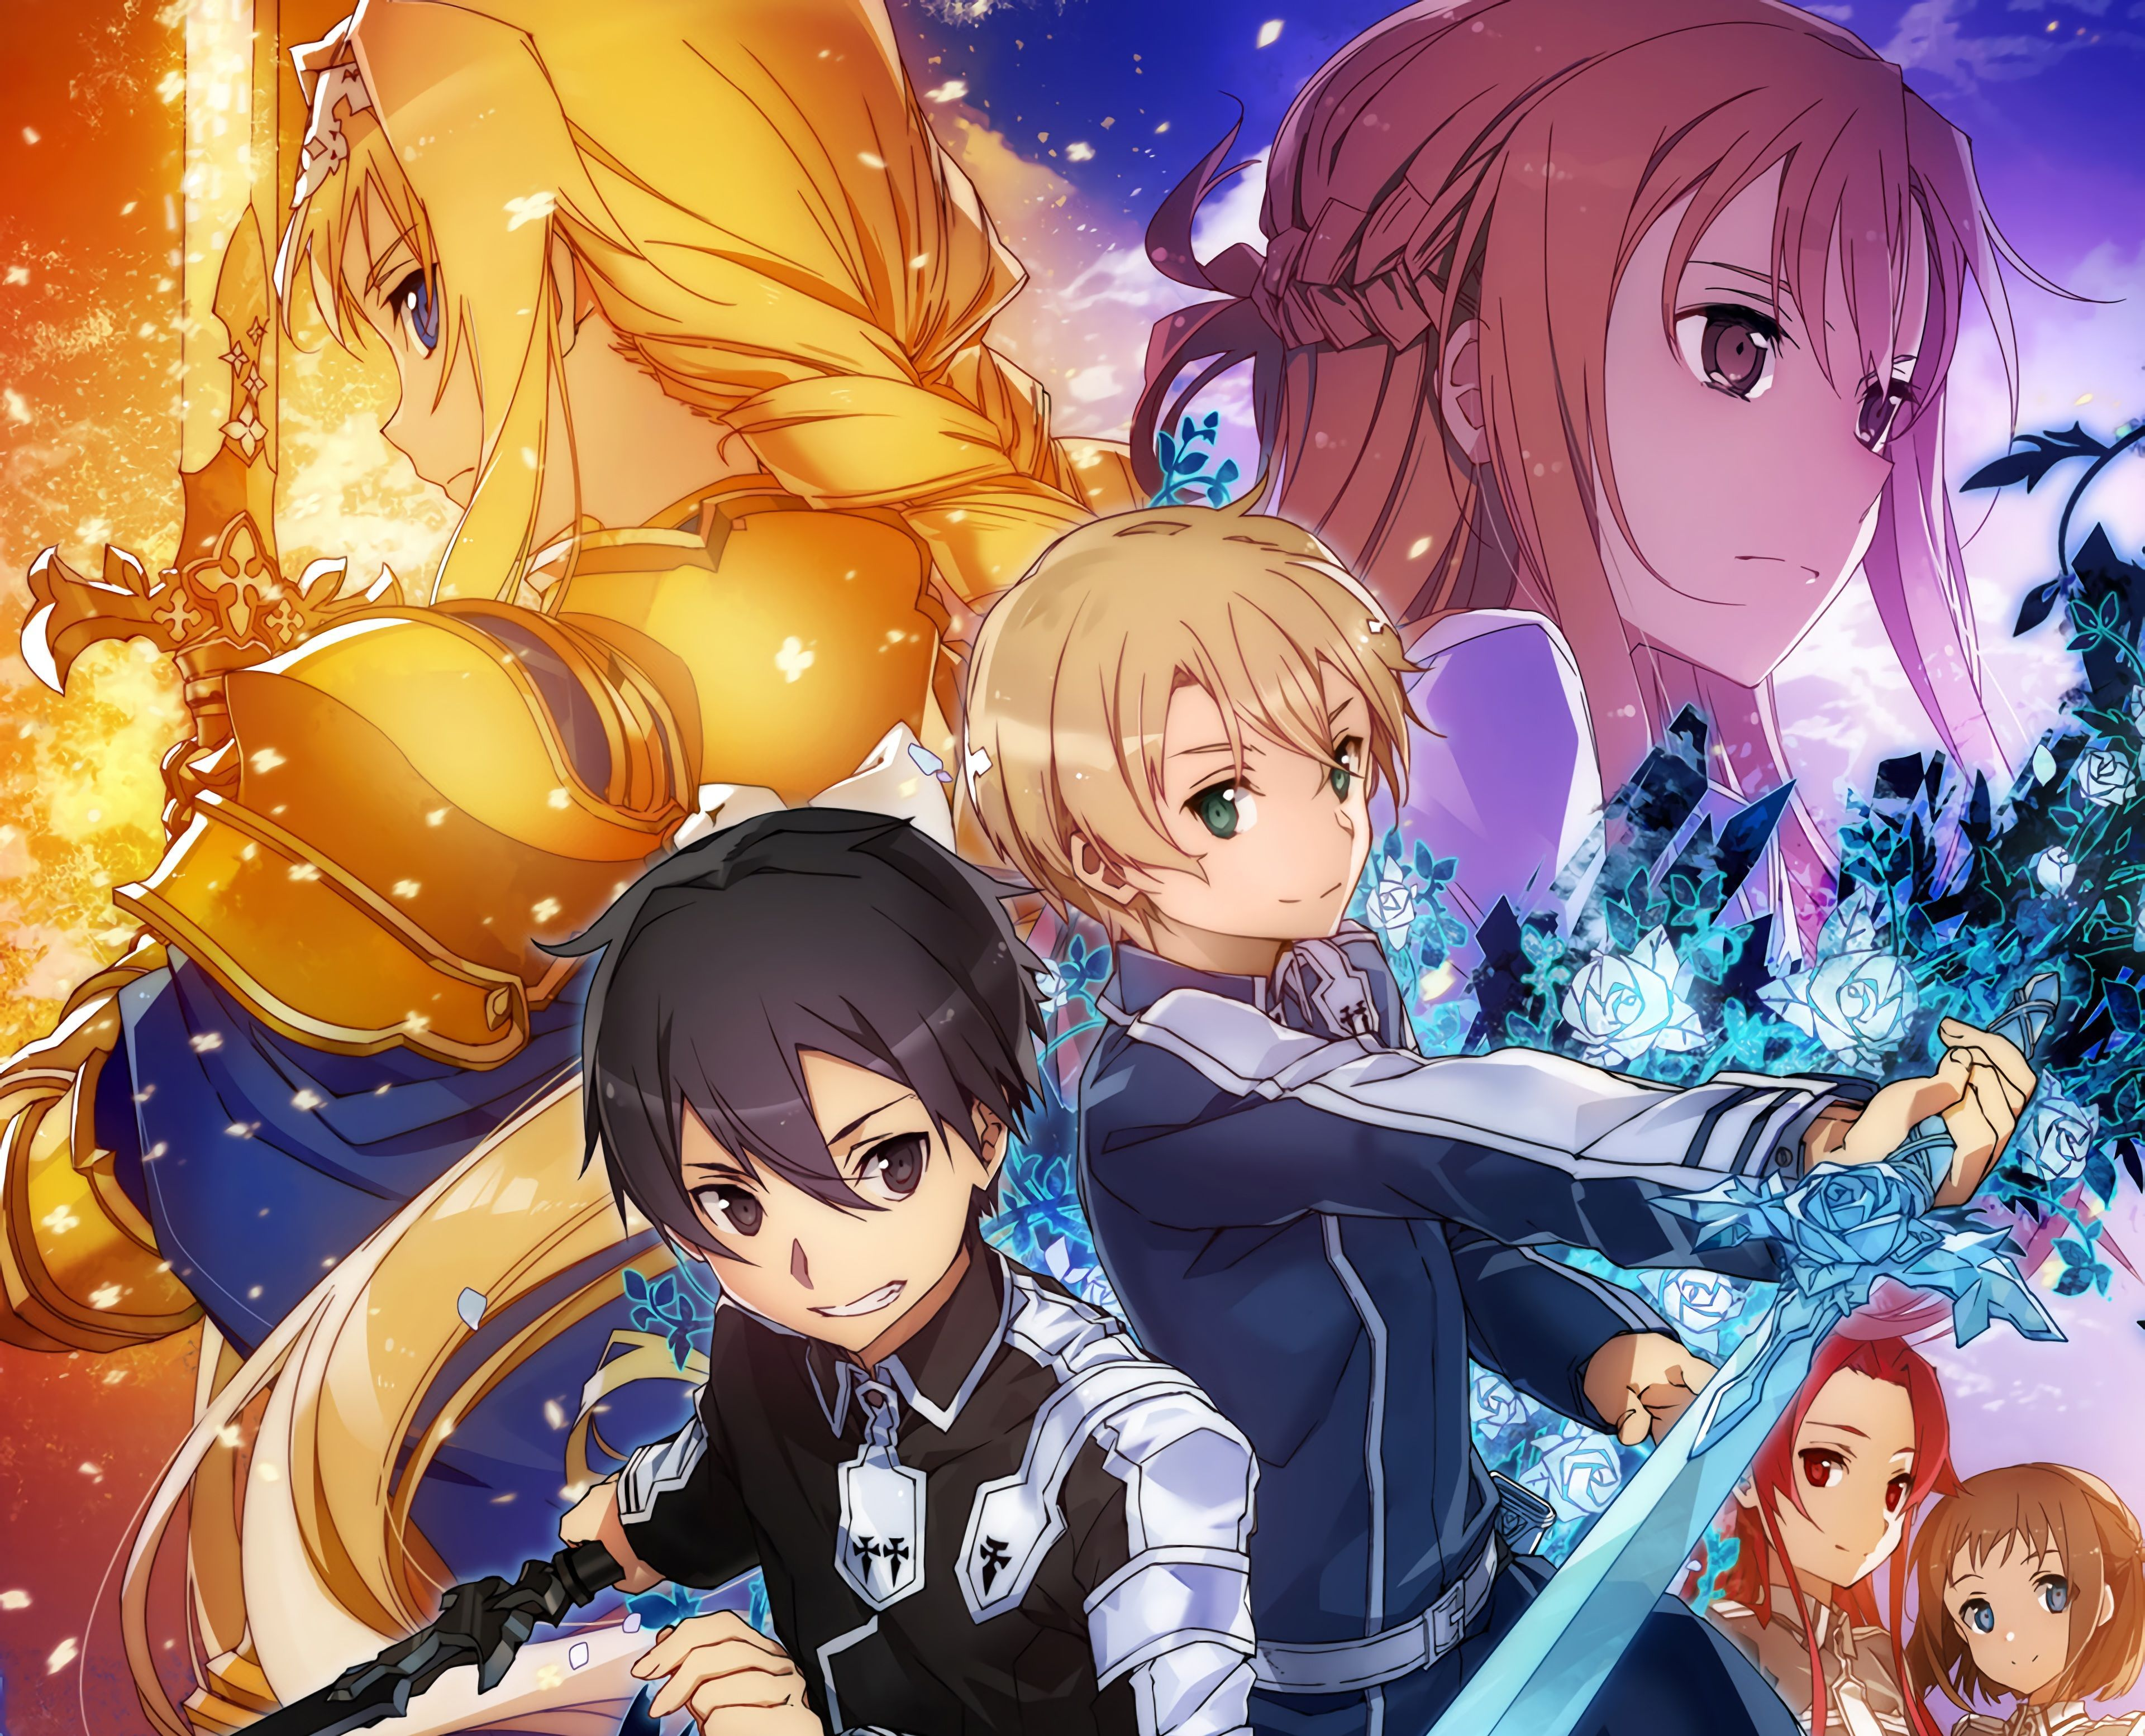 Get watch anime online free in a simple way through a high quality platform